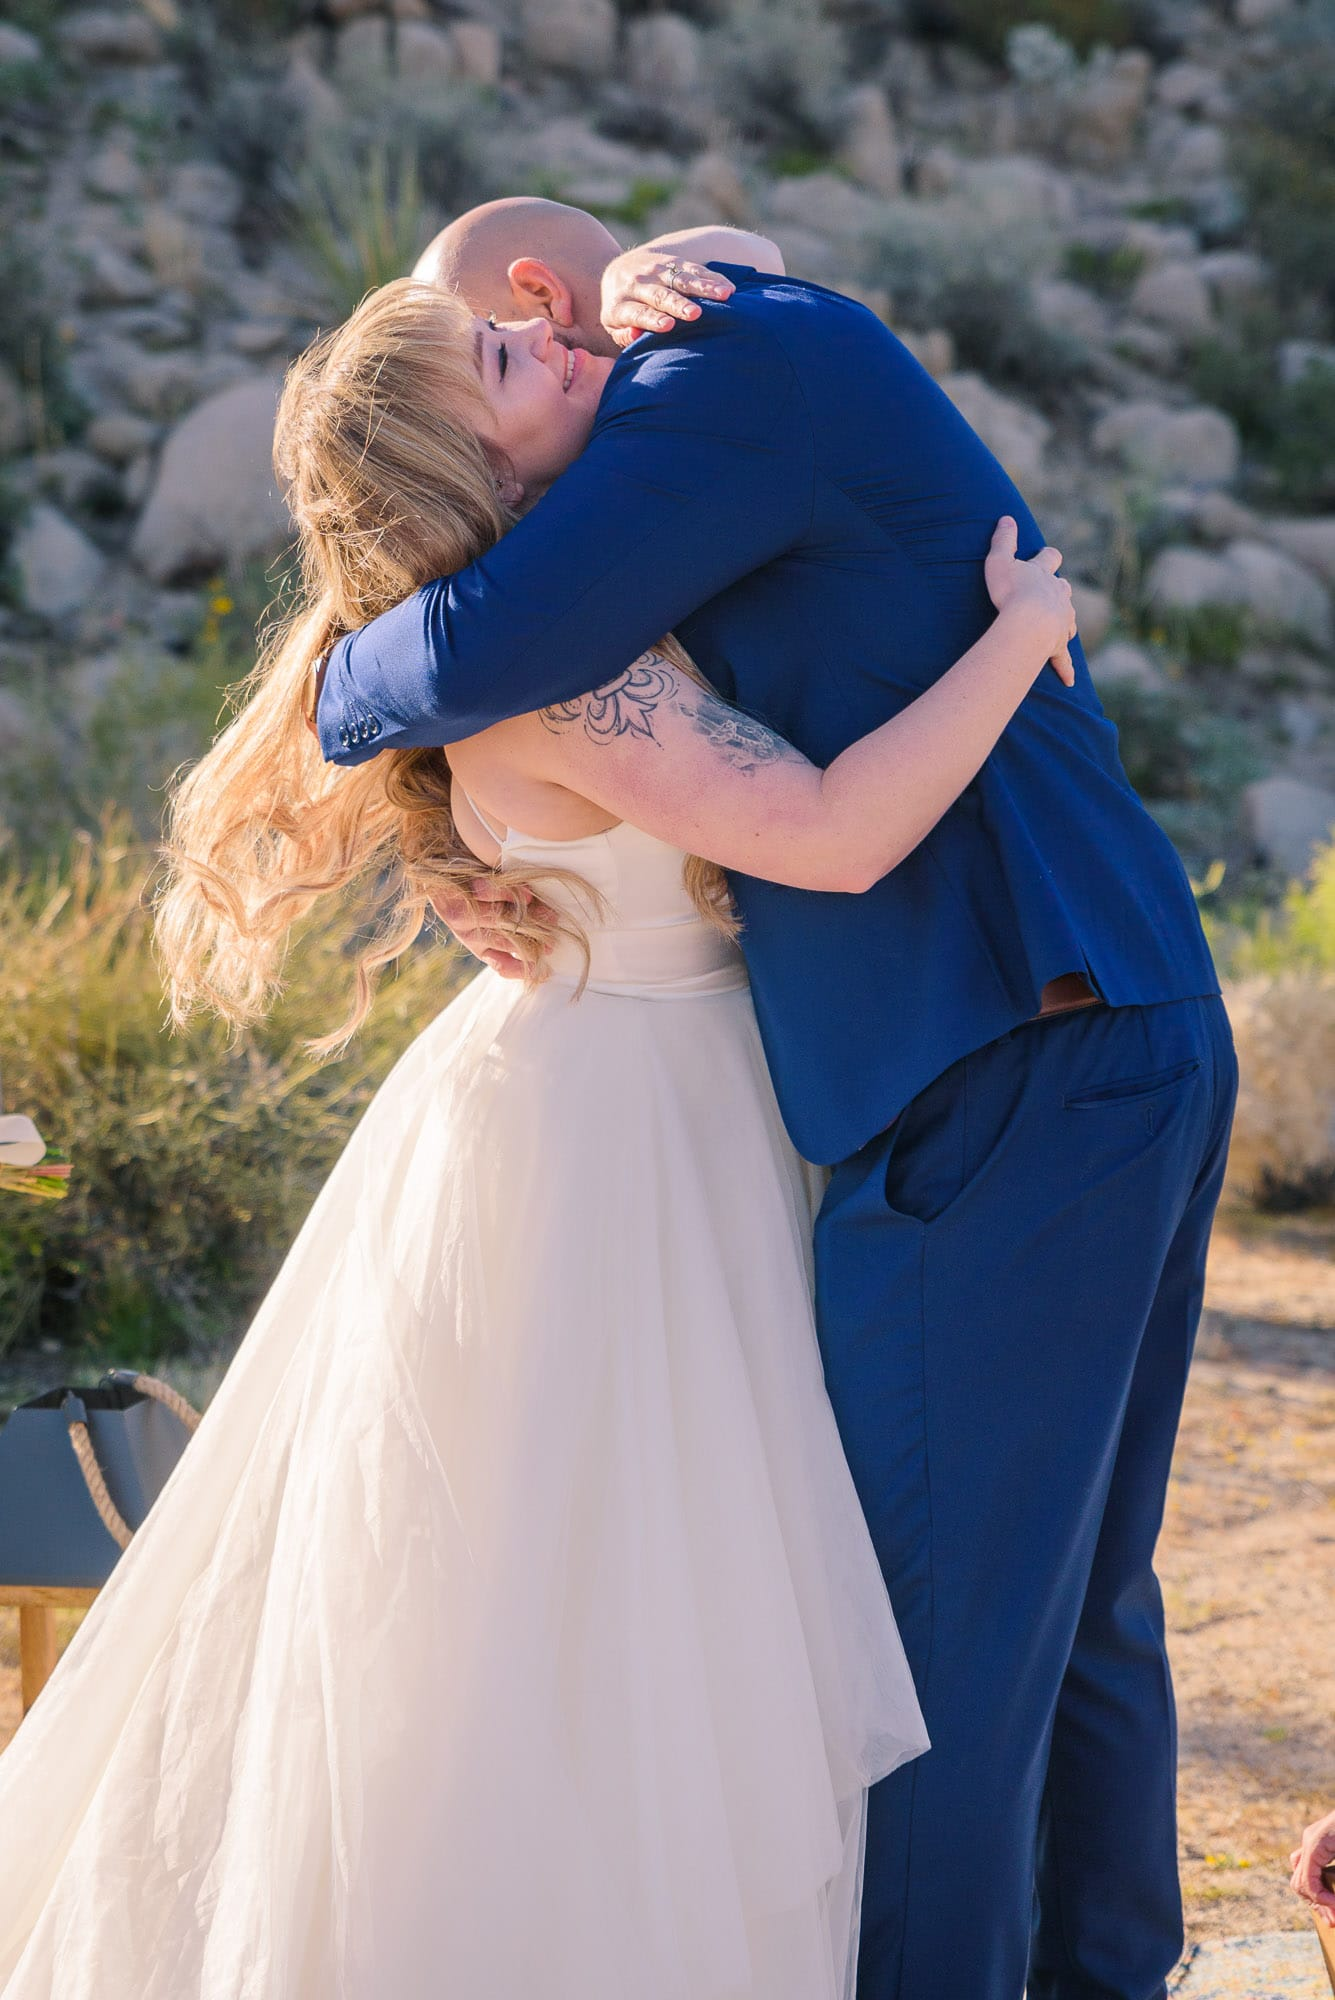 029_Alan_and_Heidi_Joshua_Tree_Spring_Elopement